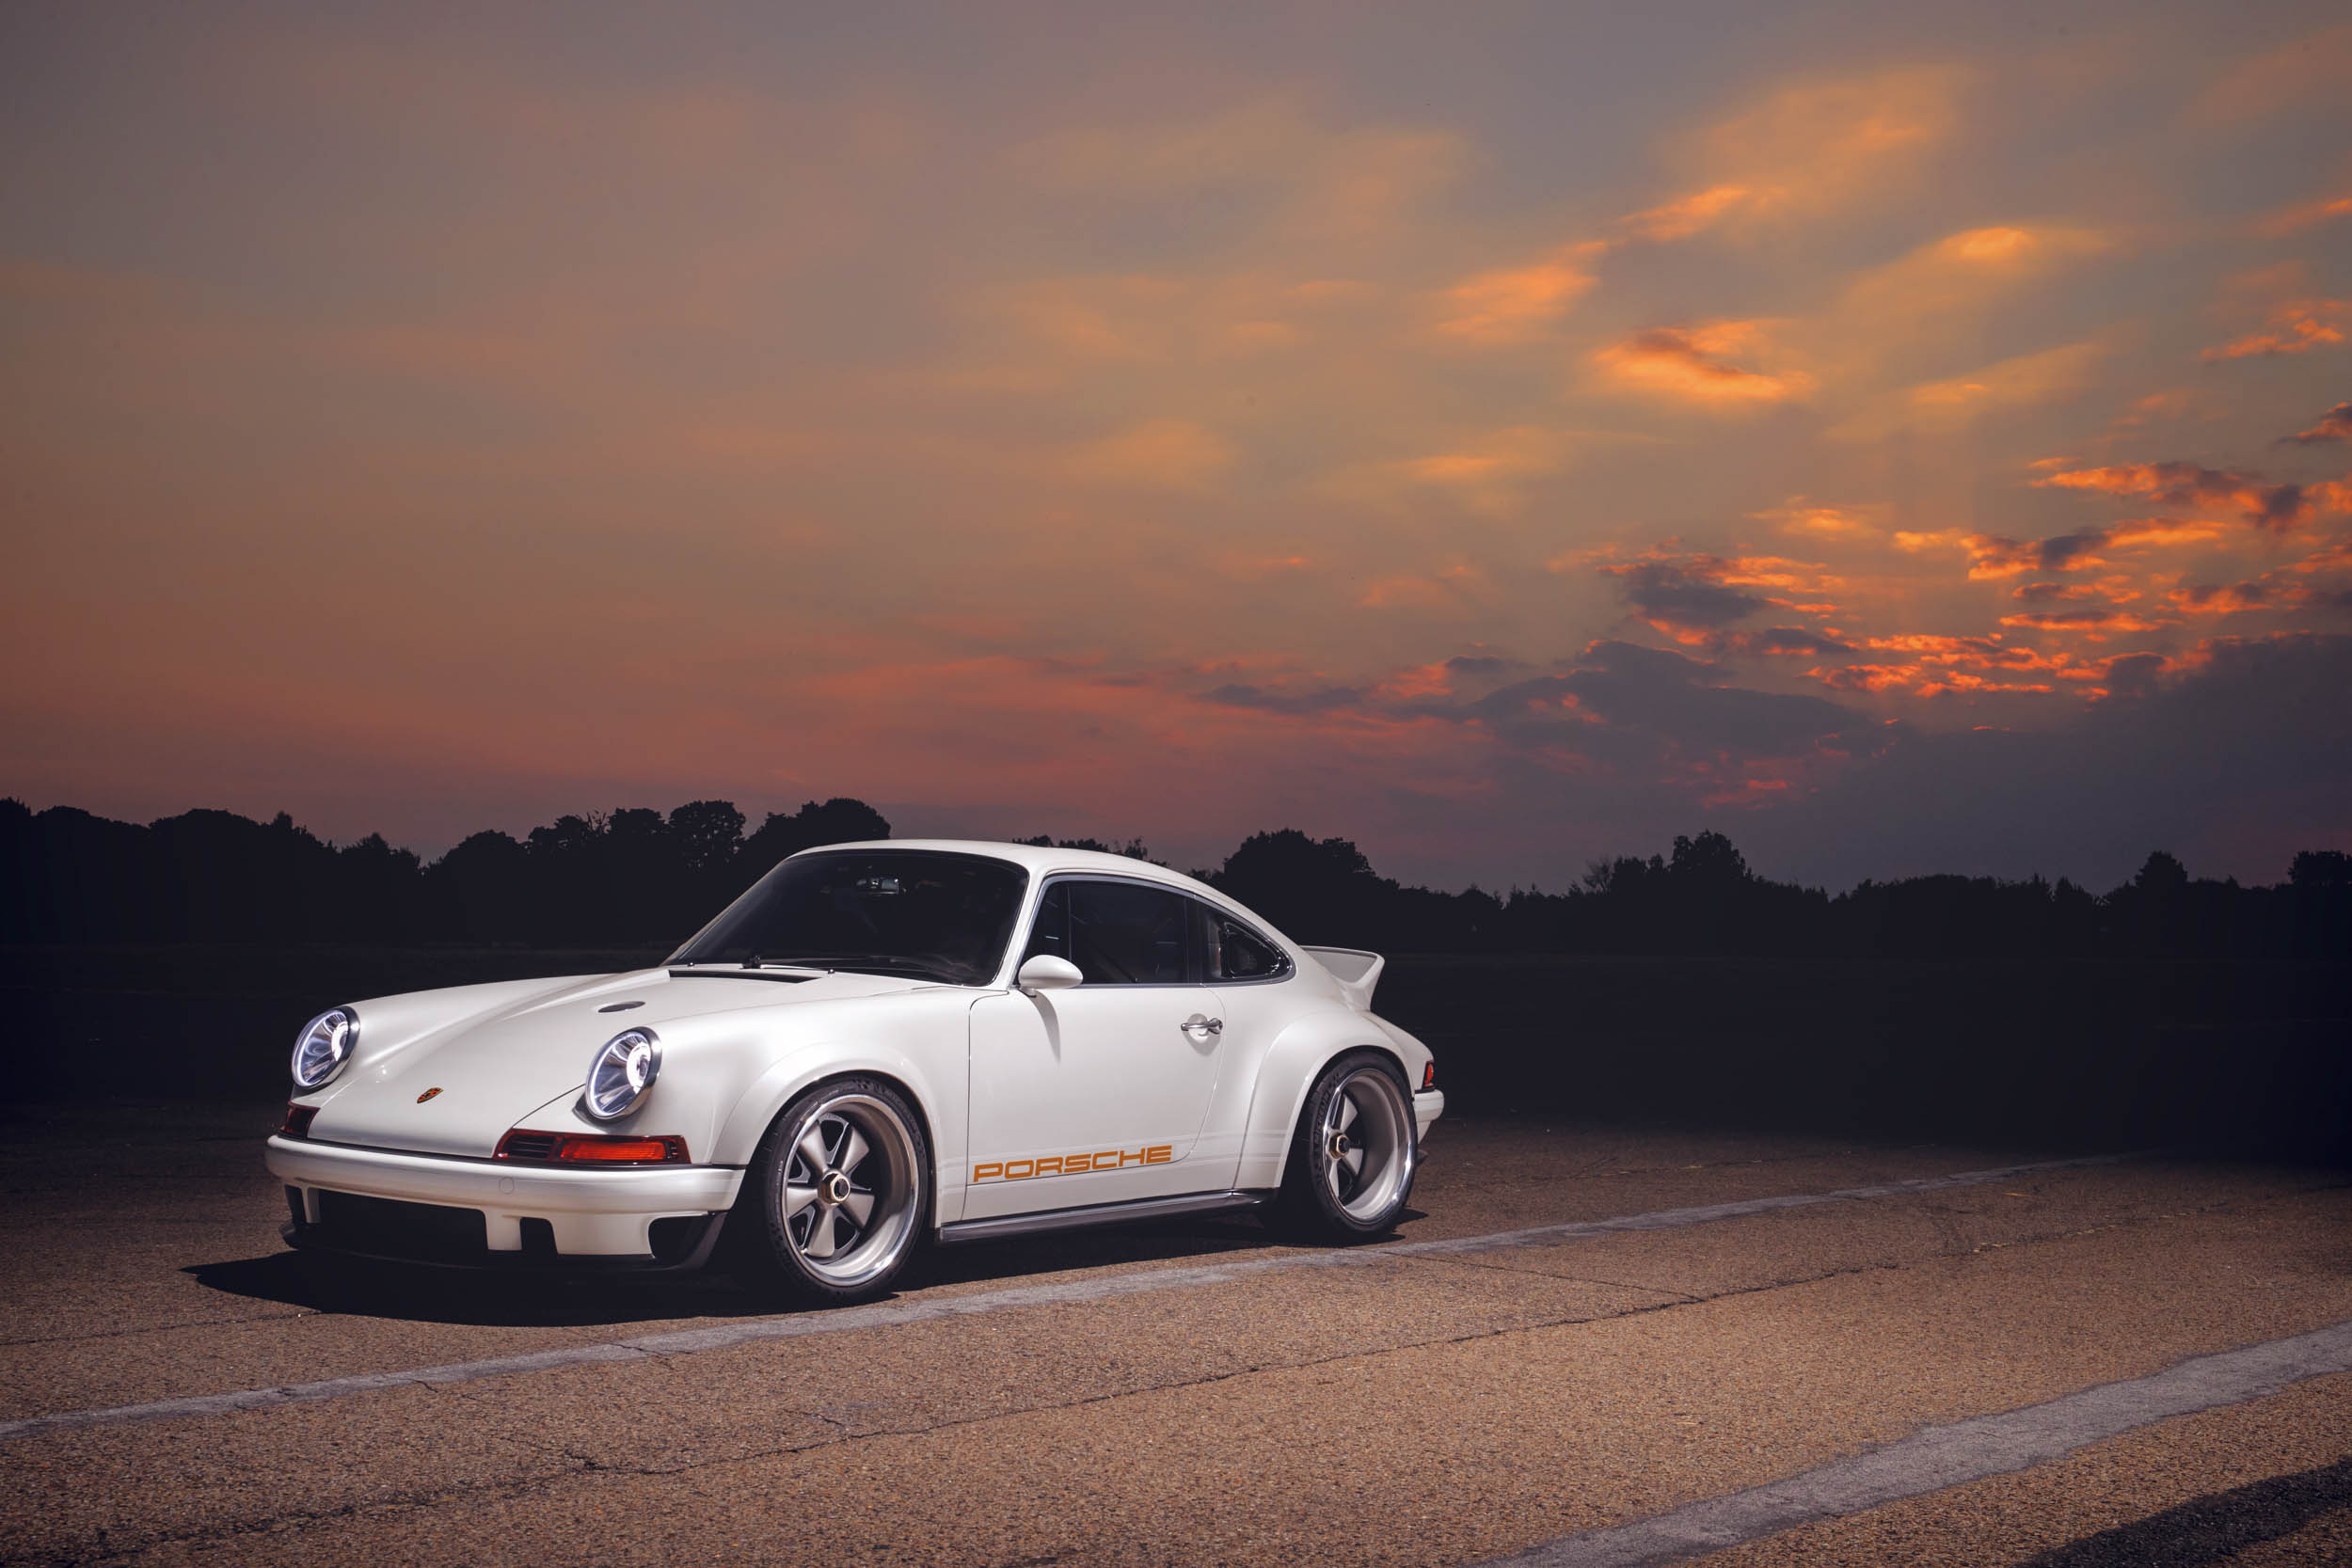 1990 Porsche 911 (964), reimagined by Singer front 3/4 at sunset